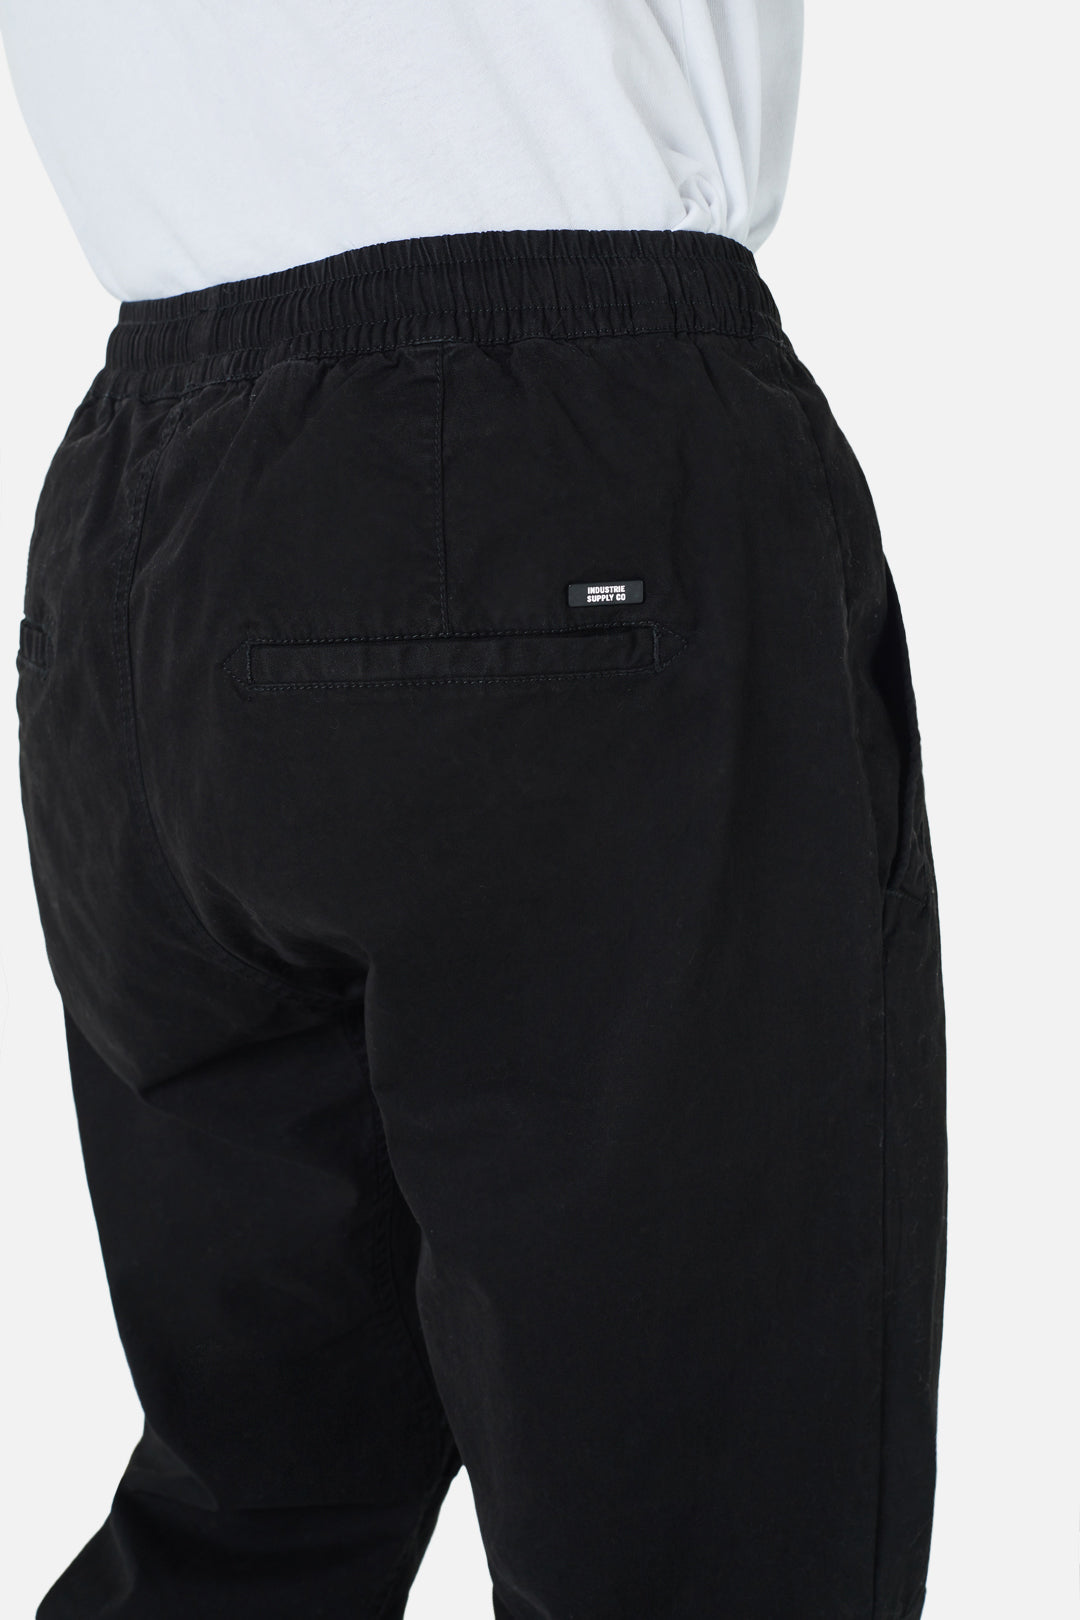 The New Hasting Pant - Black